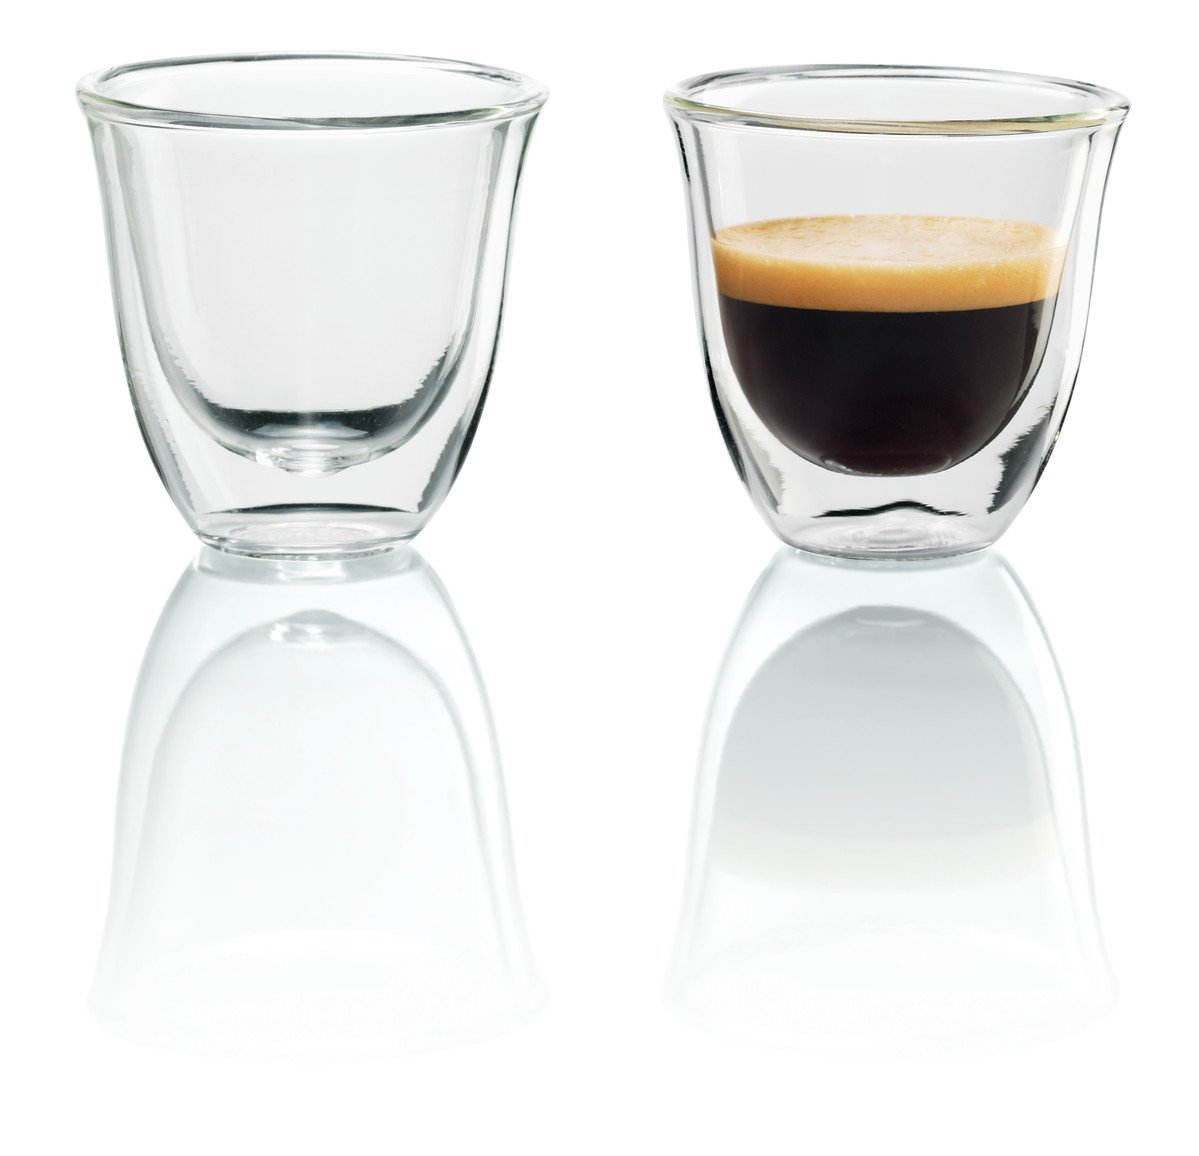 Delonghi 5513214601 Cappuccino Thermo Glasses - Pack of 2 5513214601_N/A